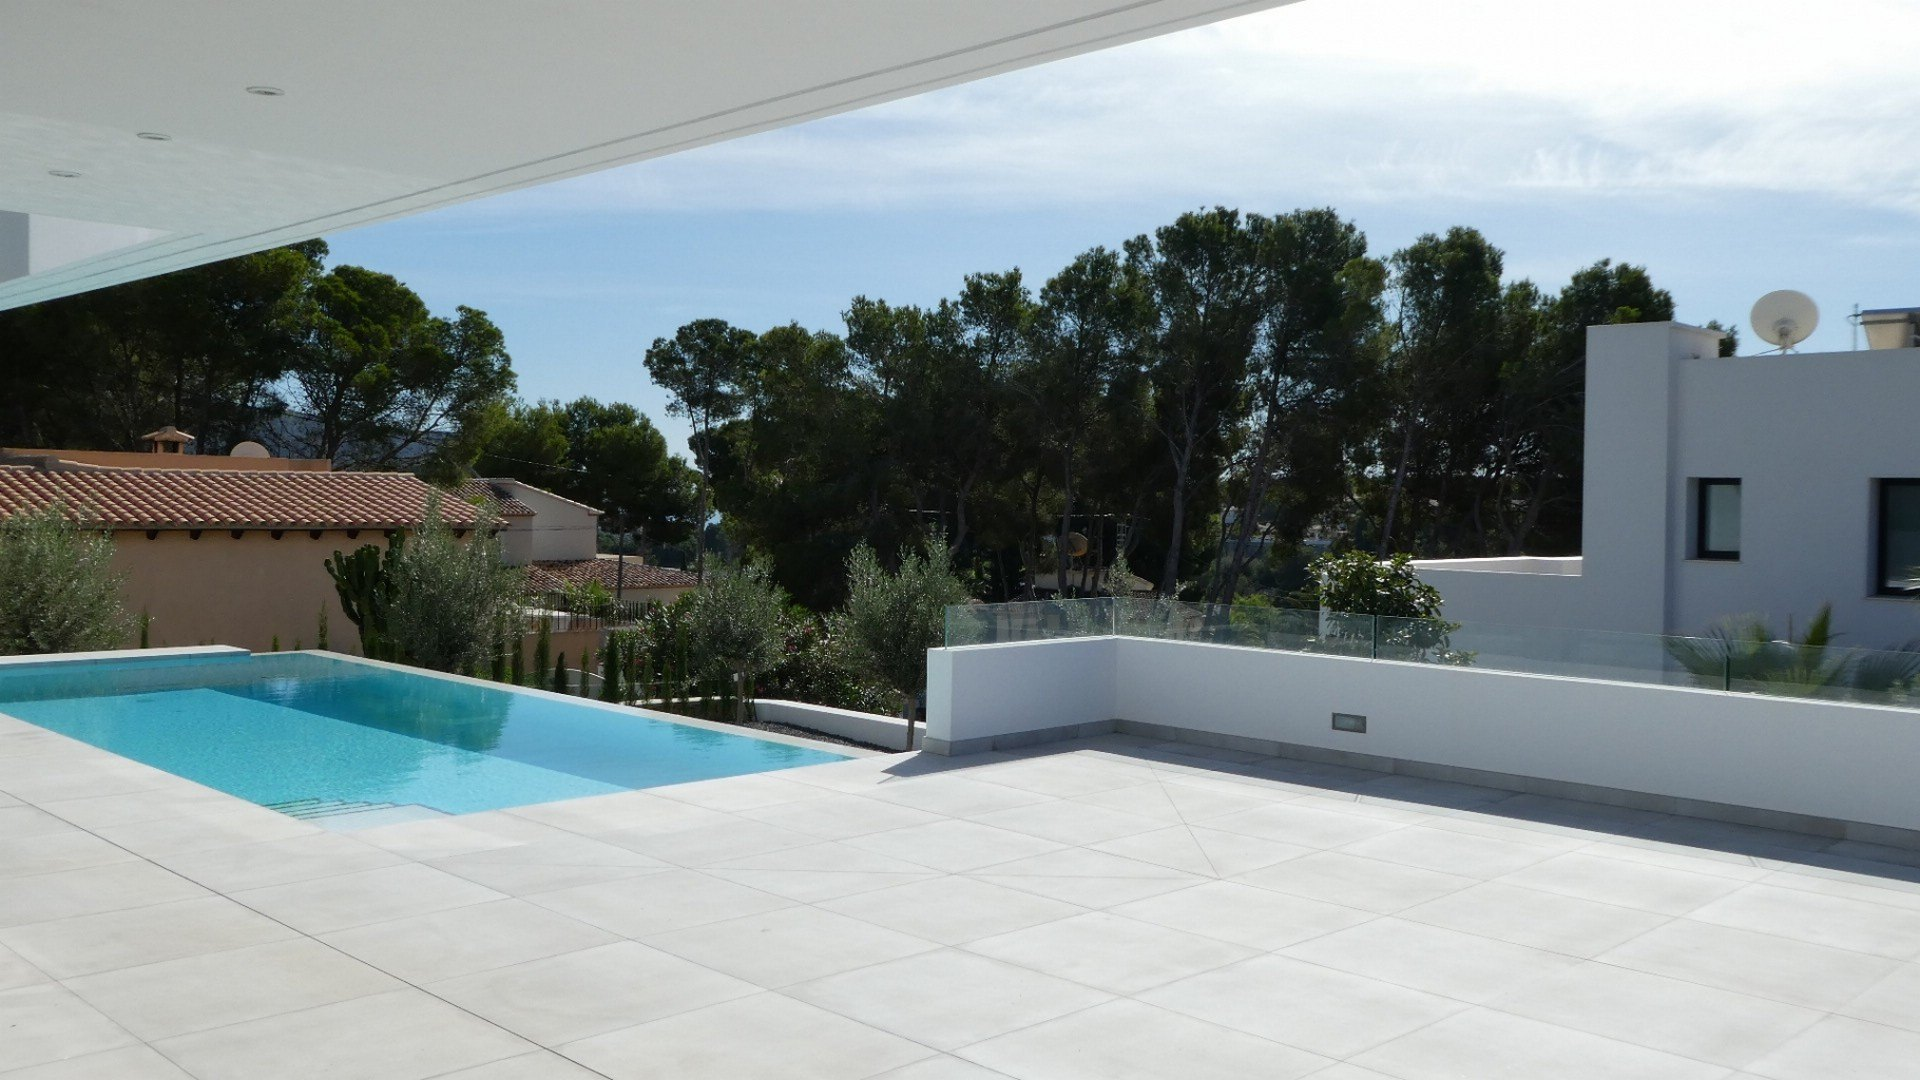 Photogallery - 8 - Build a villa in Moraira: villas for sale in Moraira